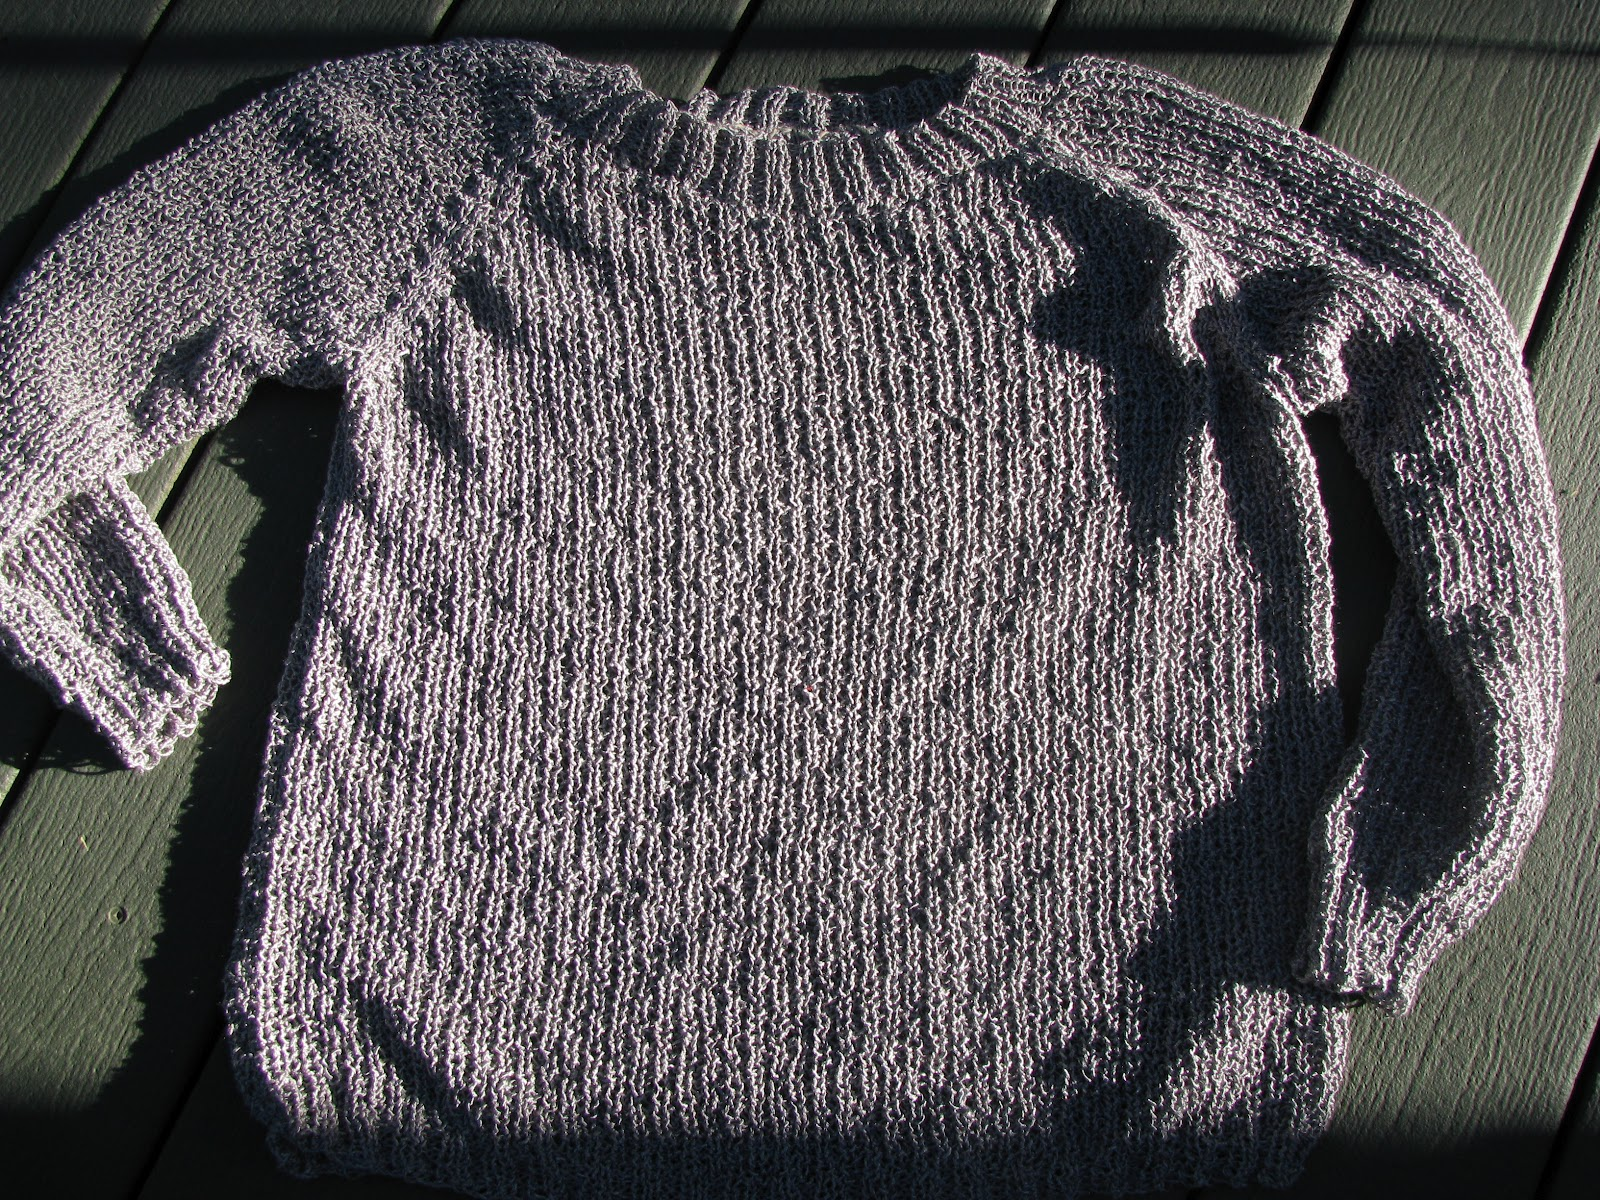 Knitting In The Round Sweater Patterns : Chris knits in niagara million hits sweater